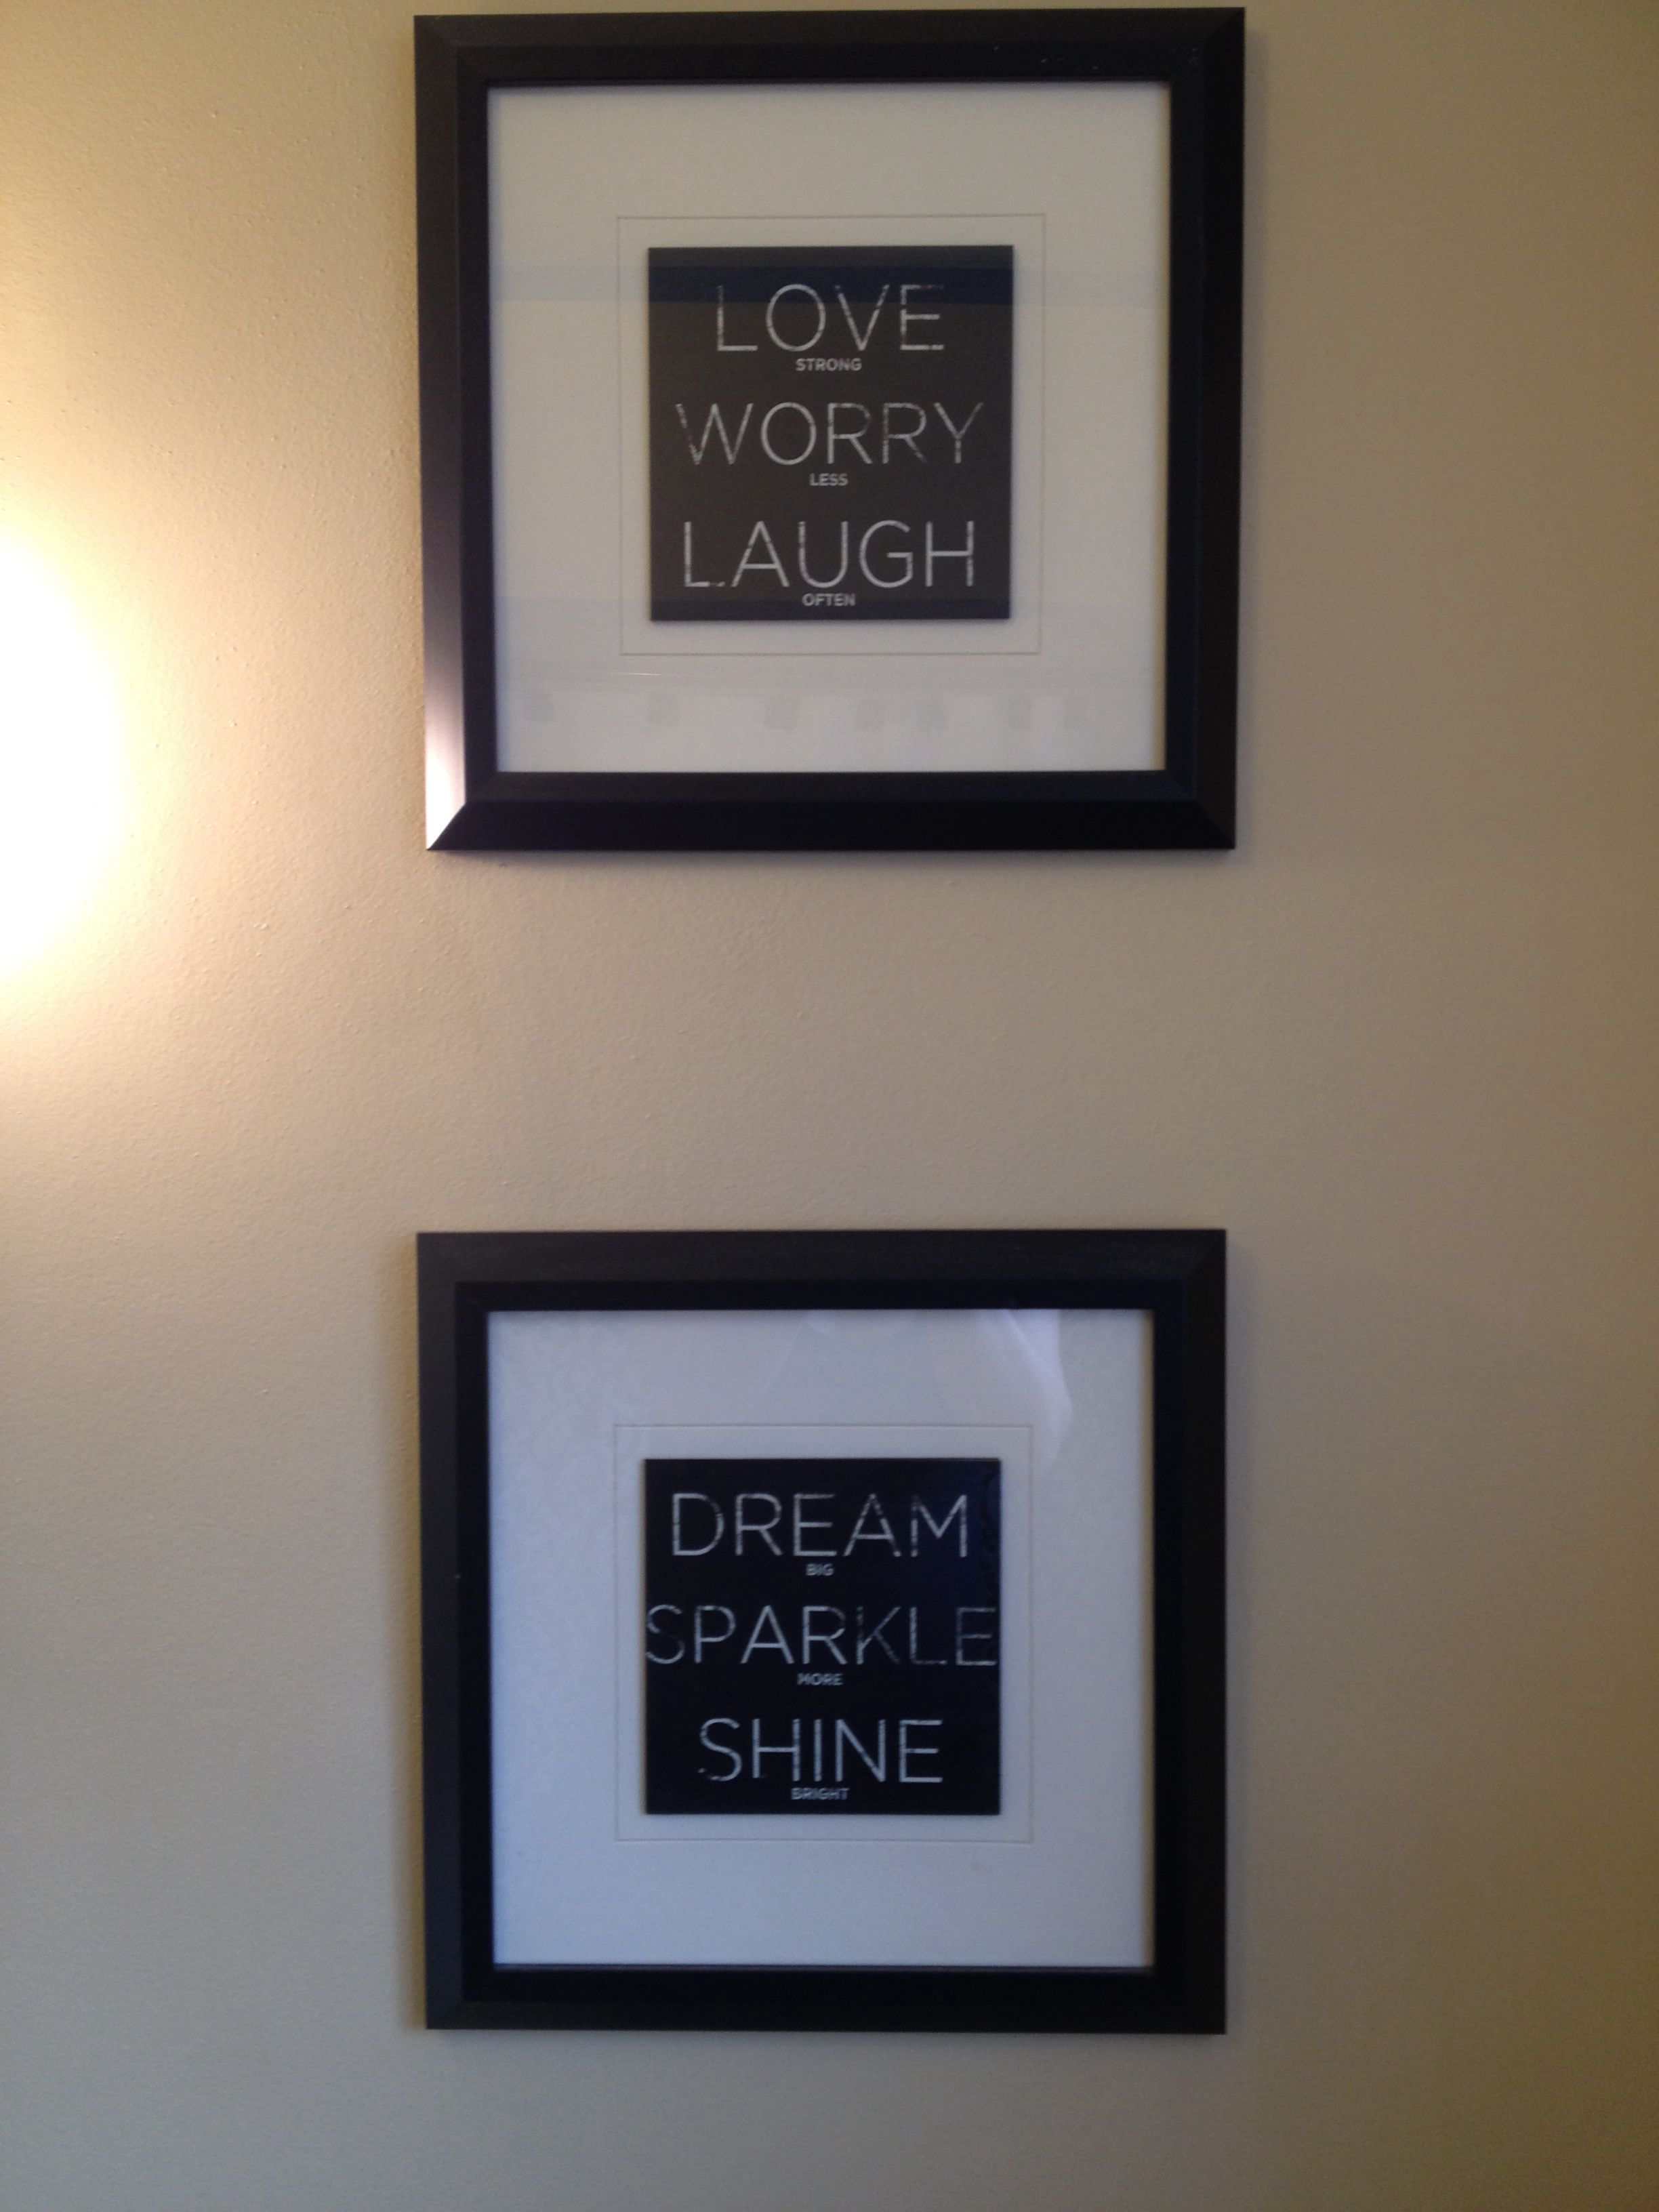 Bathroom Wall Decor Tj Maxx These Are Cute I Need Some Wall Decor For Our Bathroom We Have One Pict Compass Wall Decor Living Room Decor Rustic Wall Decor